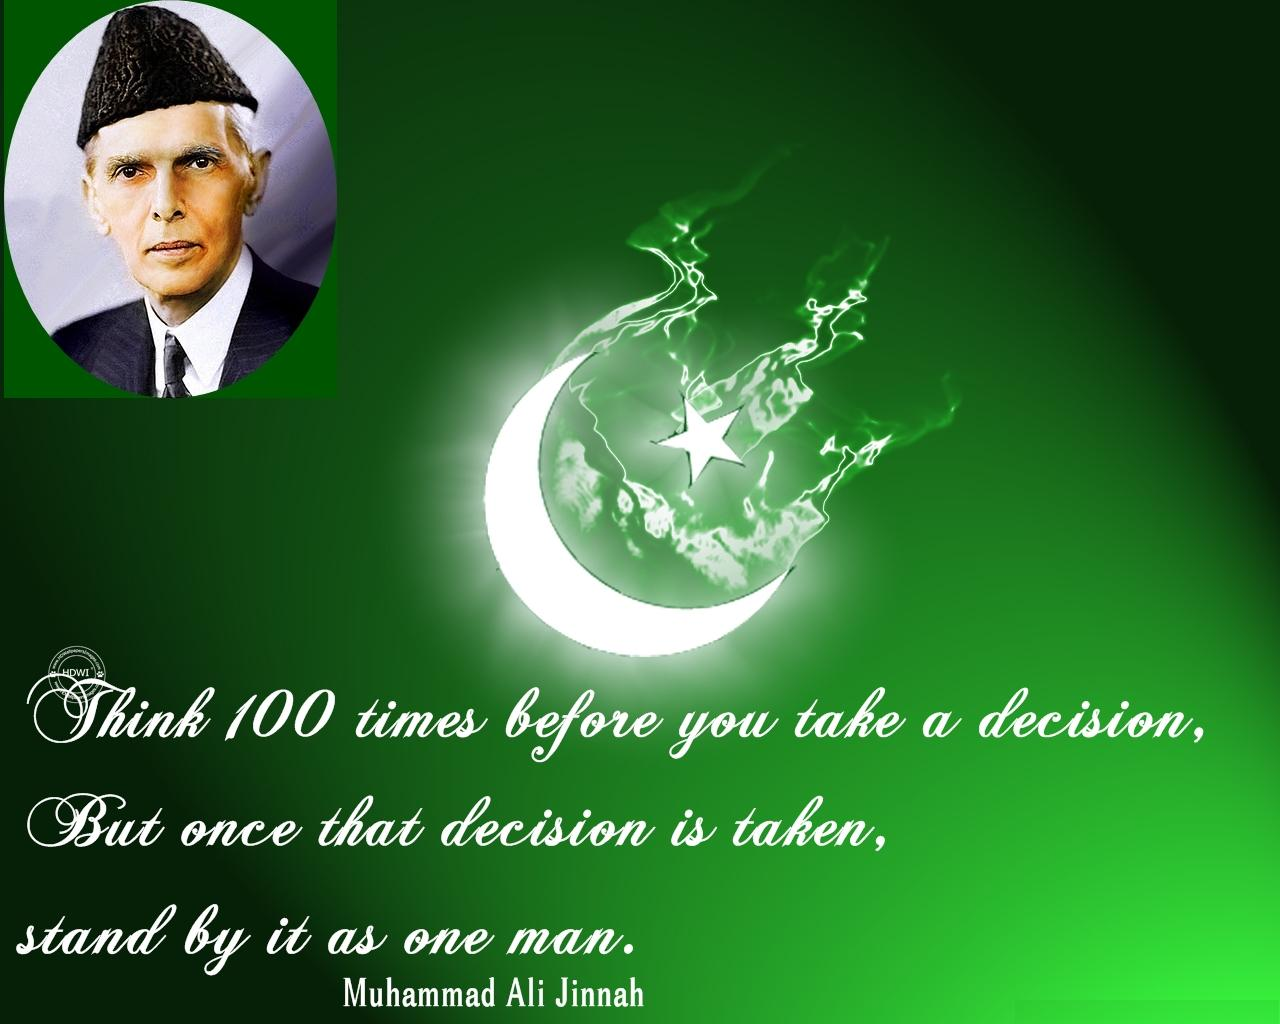 Pakistan-Independence-Day-Quaid-e-Azam-Quotes-Wallpapers